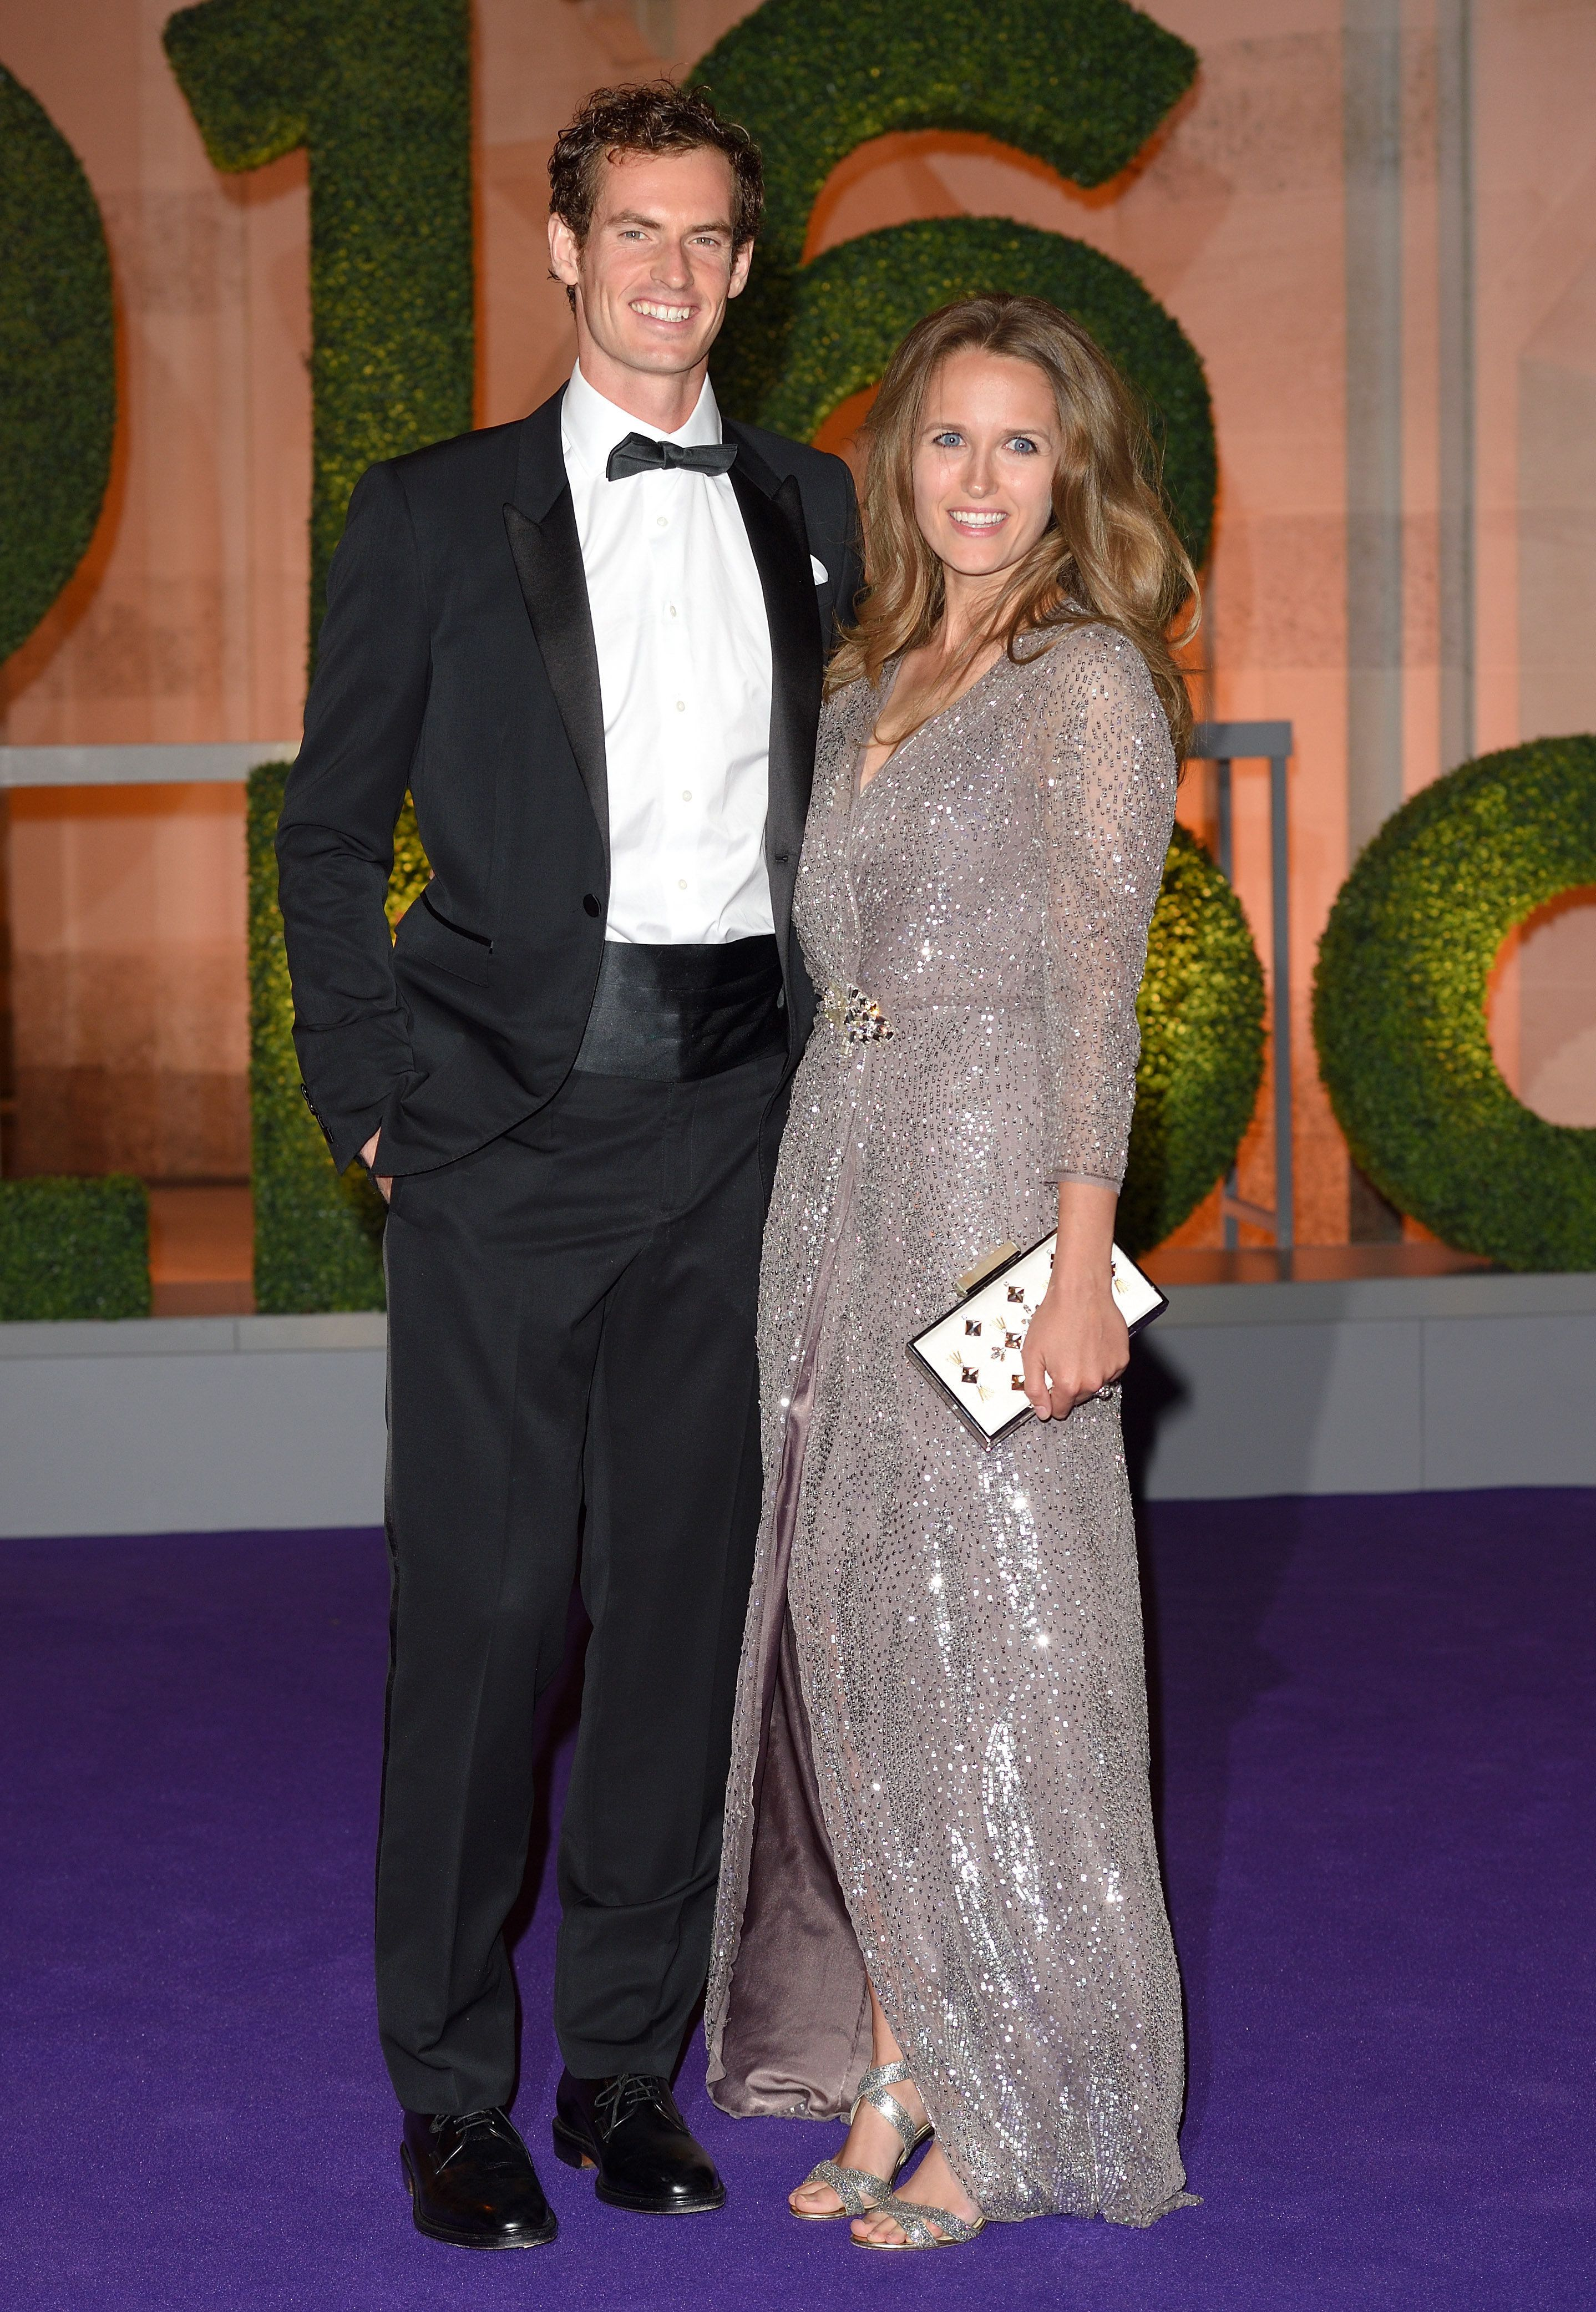 Andy Murray Reveals Wife Kim Sears Is Pregnant With Their Second